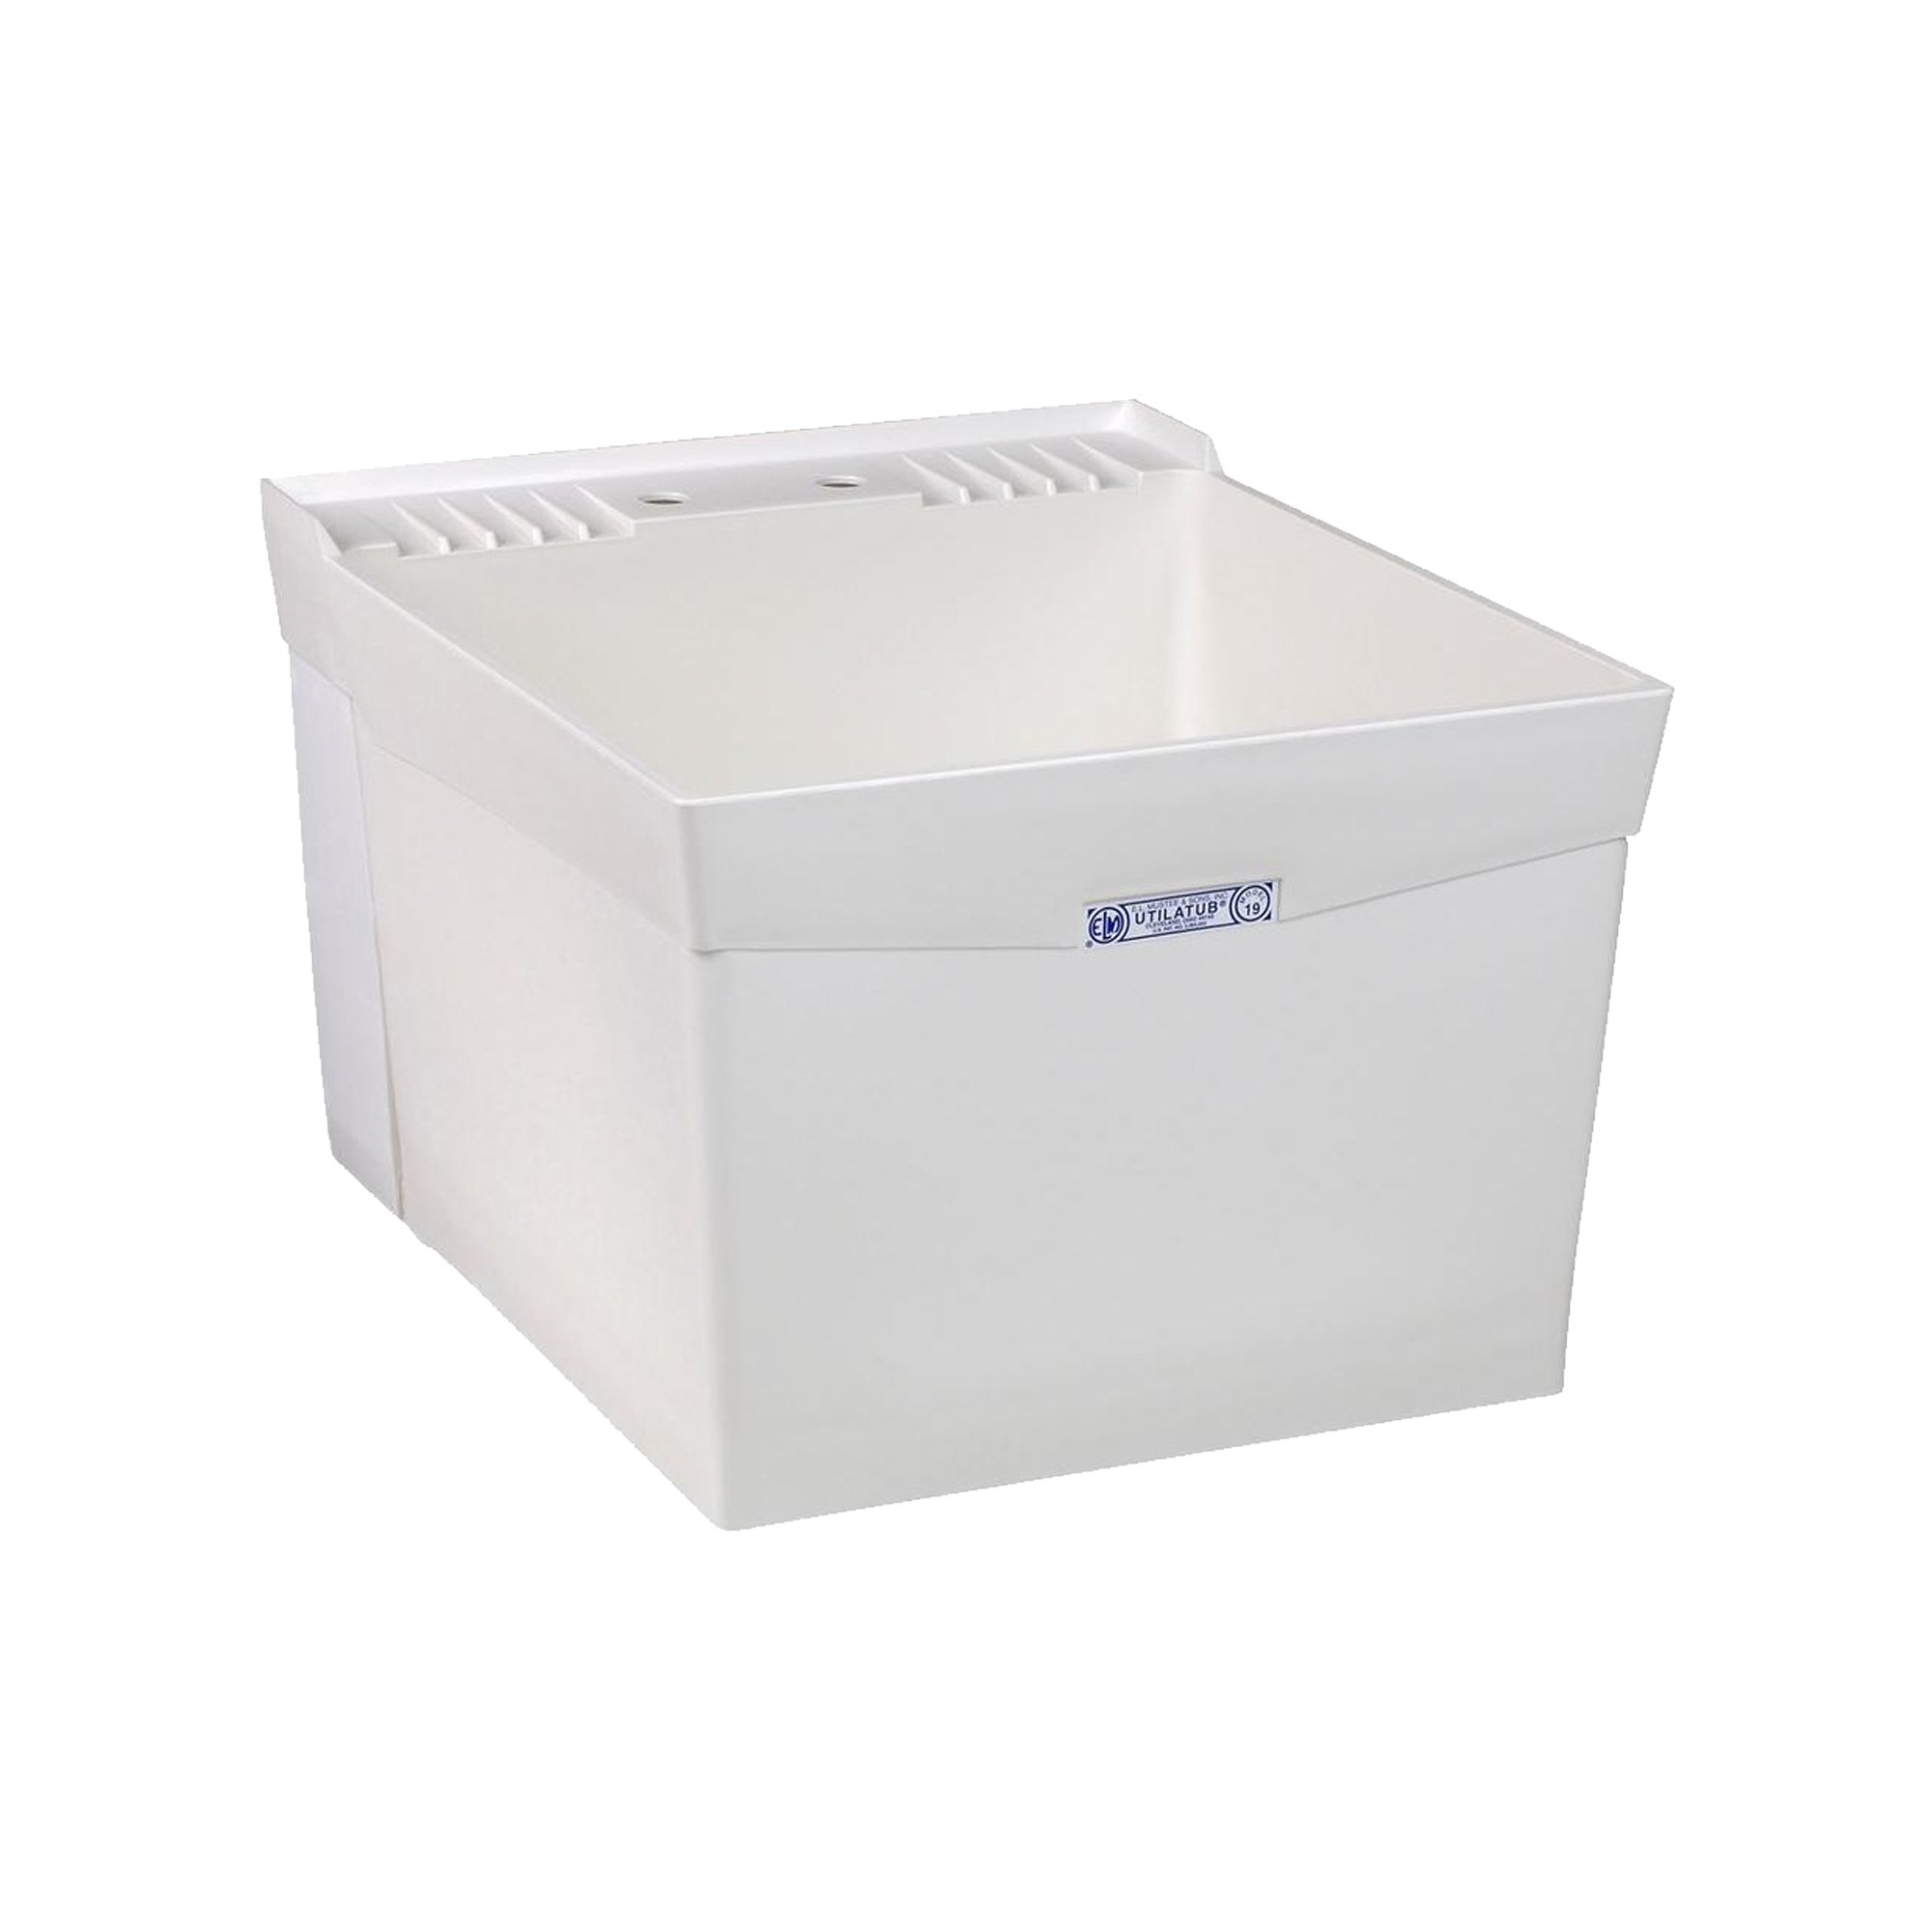 Mustee 18W Utilatub Laundry Tub Wall Mount, 24-Inch x 20-Inch, White by Mustee